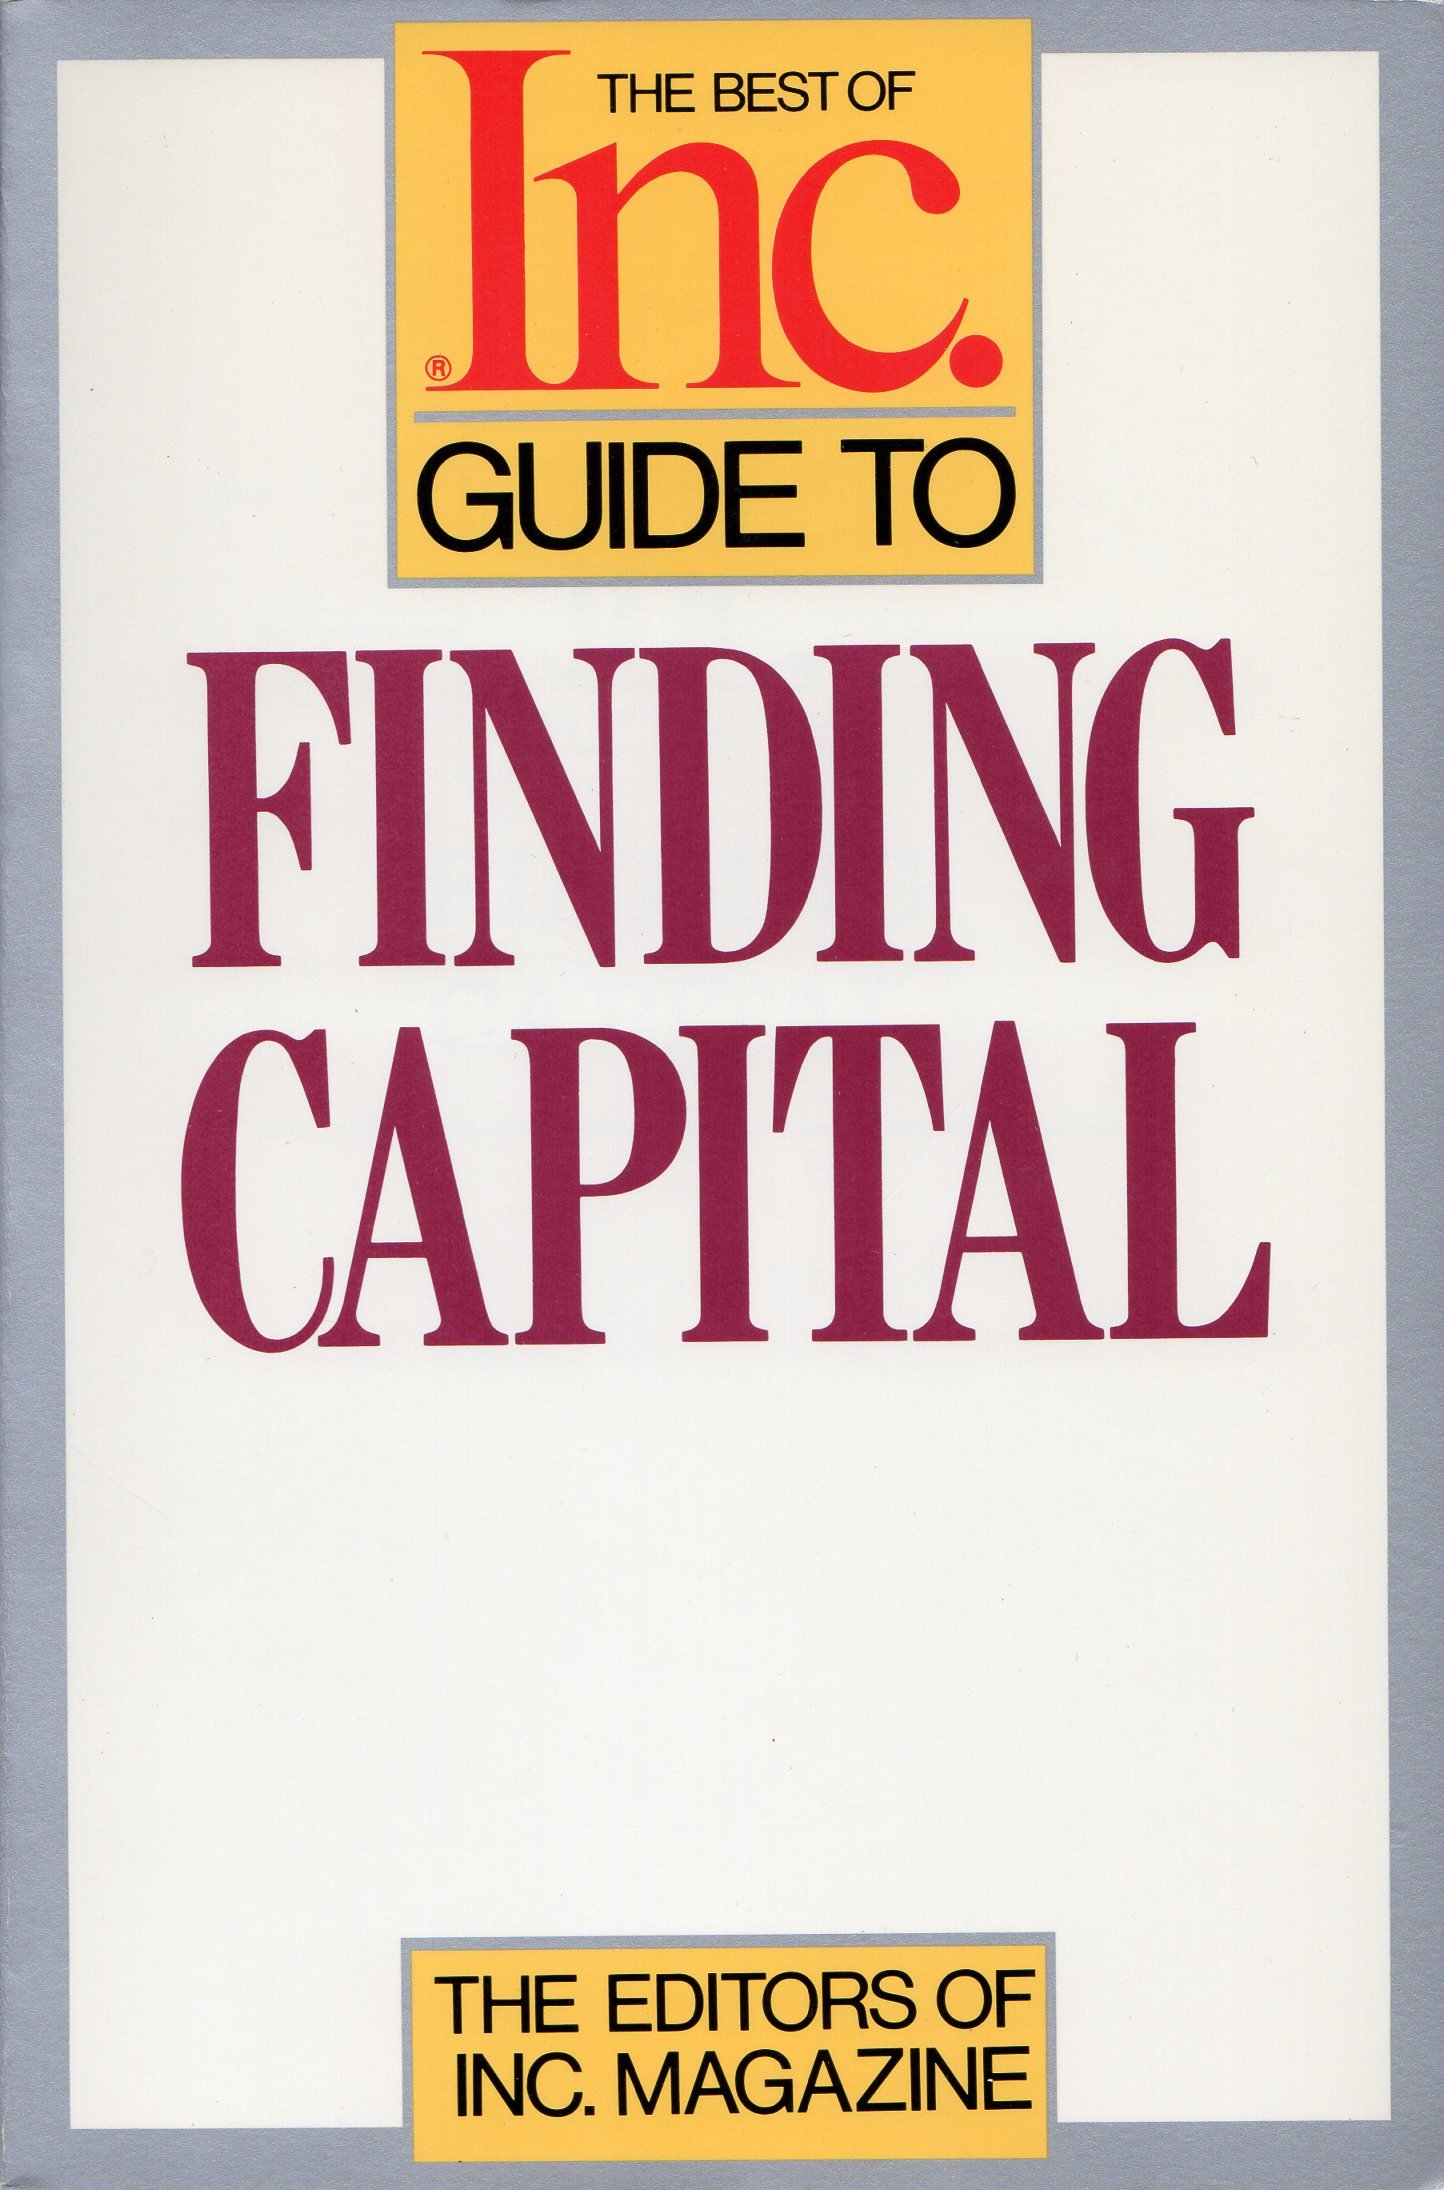 The Best of Inc. Guide to Finding Capital